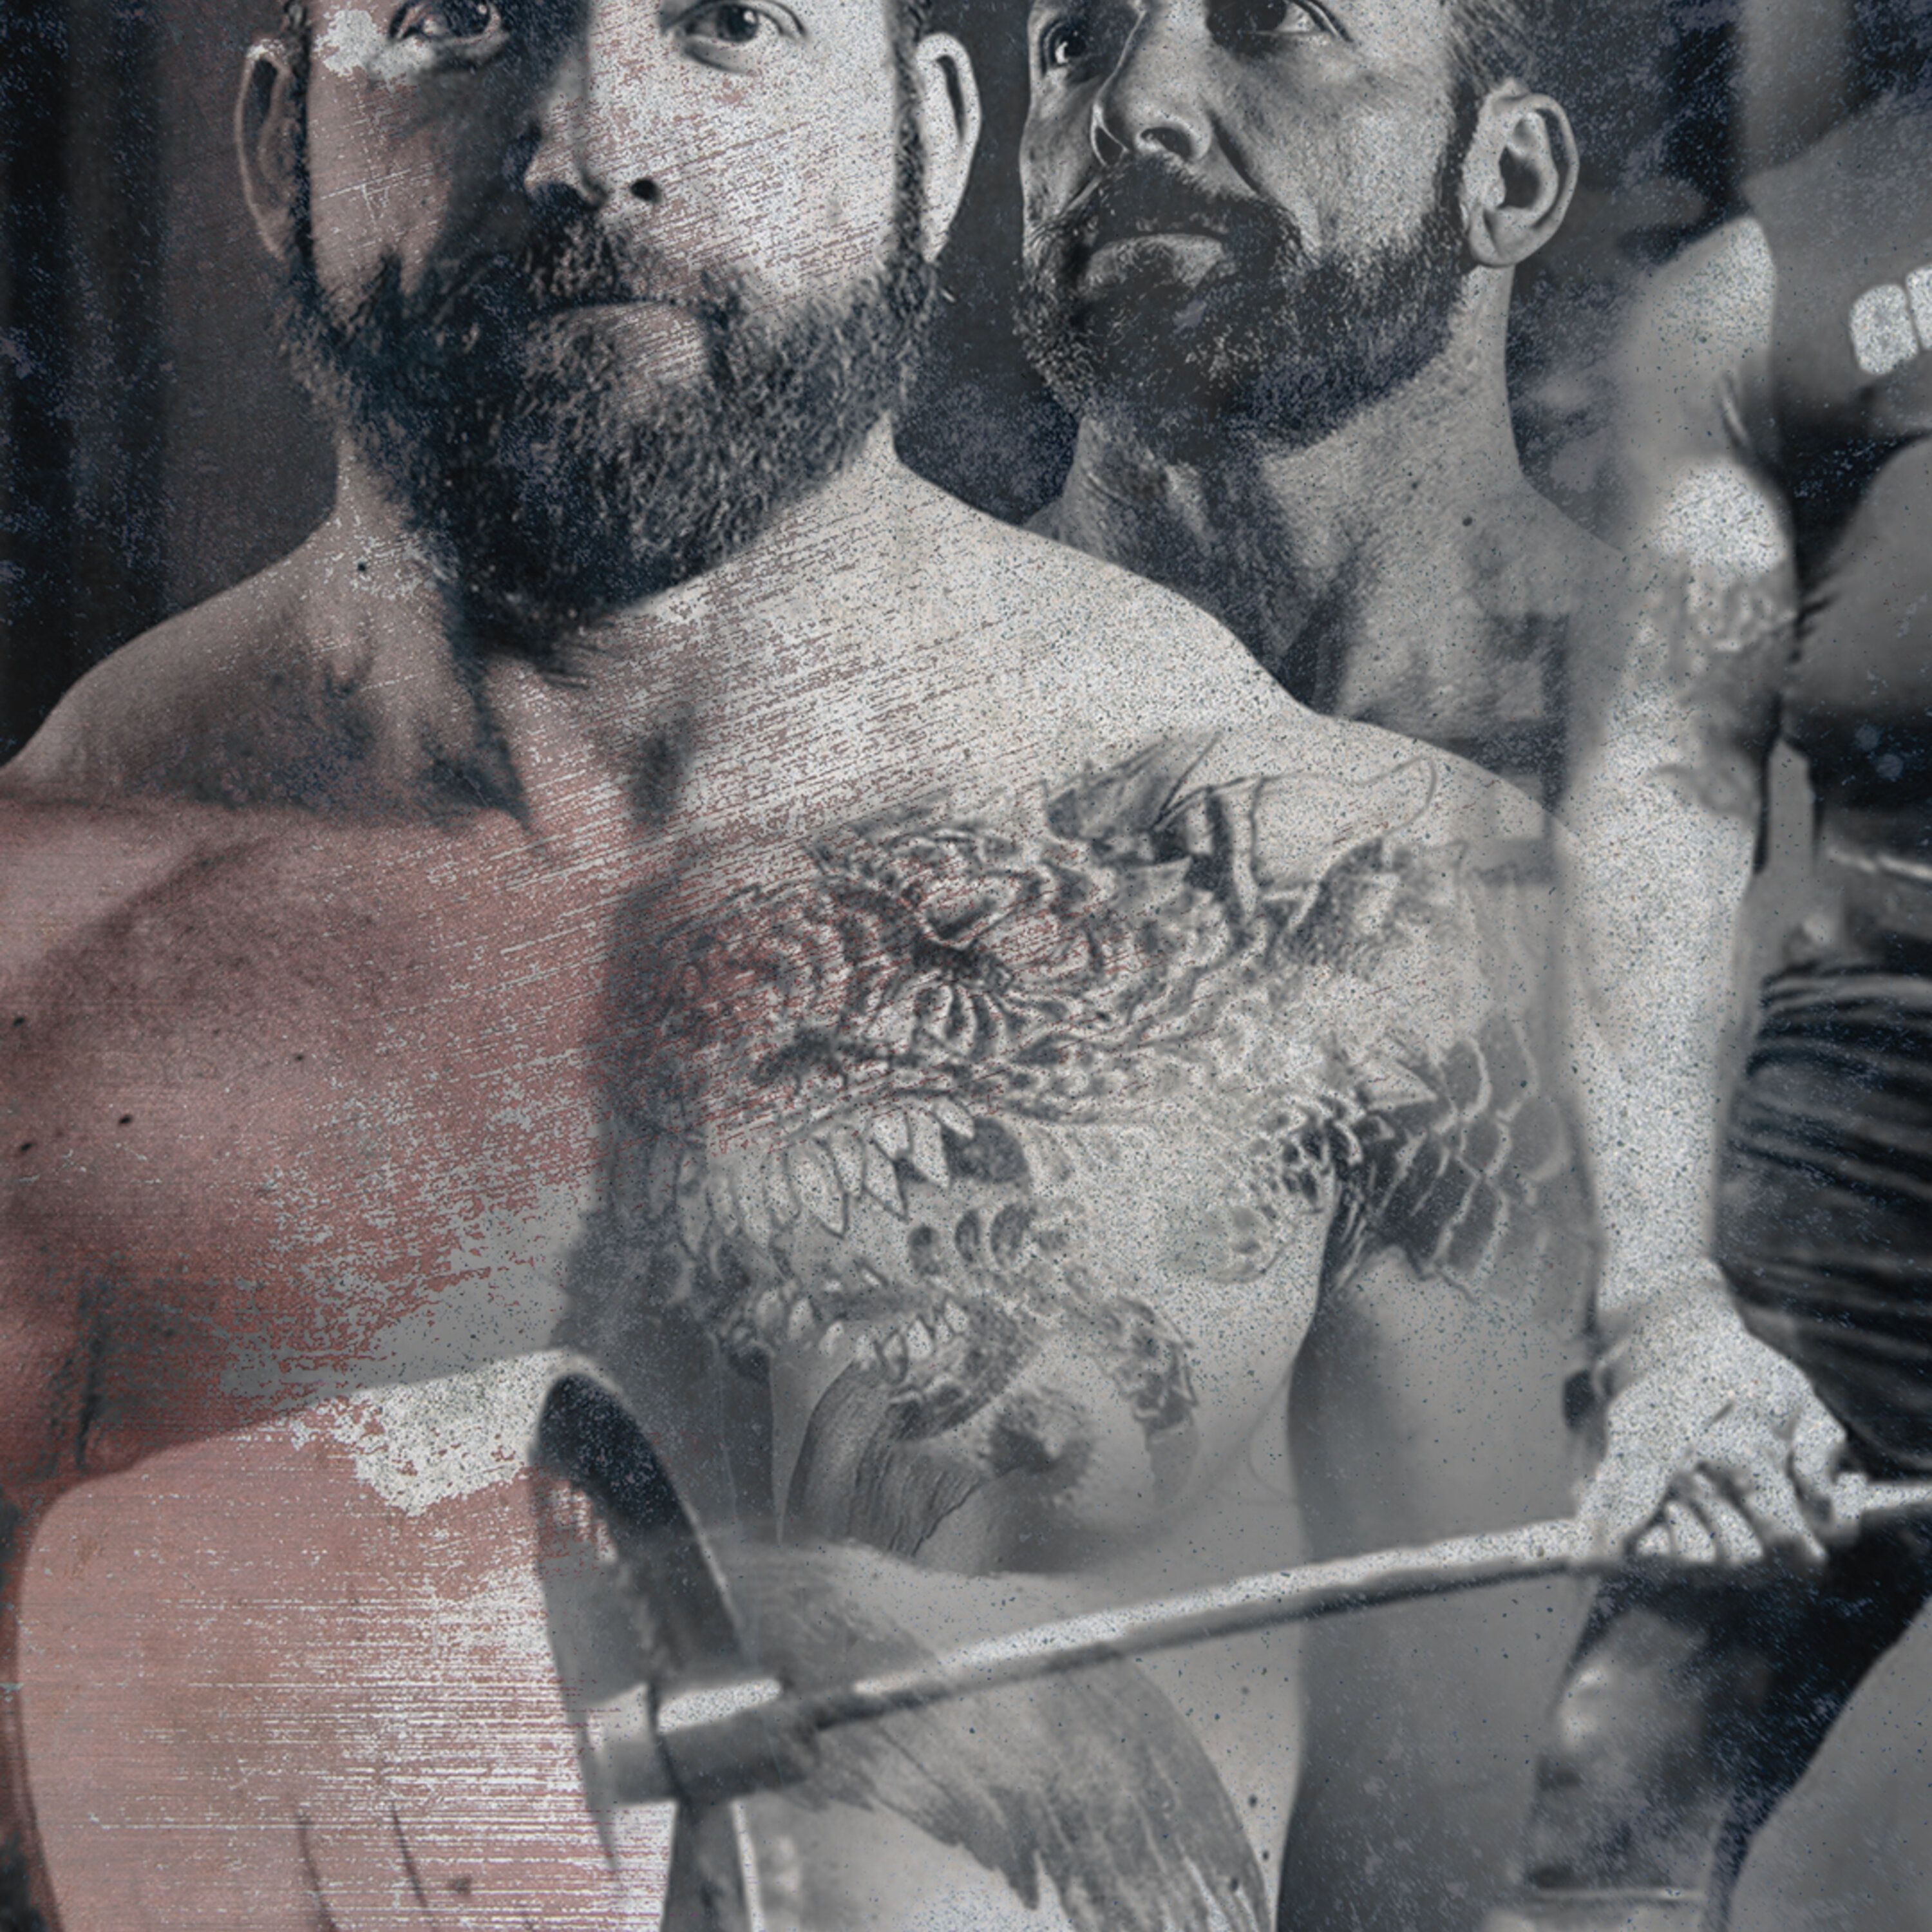 Chris Duffin: Guinness World Record Holder in Powerlifting, Author of The Eagle and the Dragon, Co-Owner of Kabuki Strength Lab, Mad Scientist of Strength